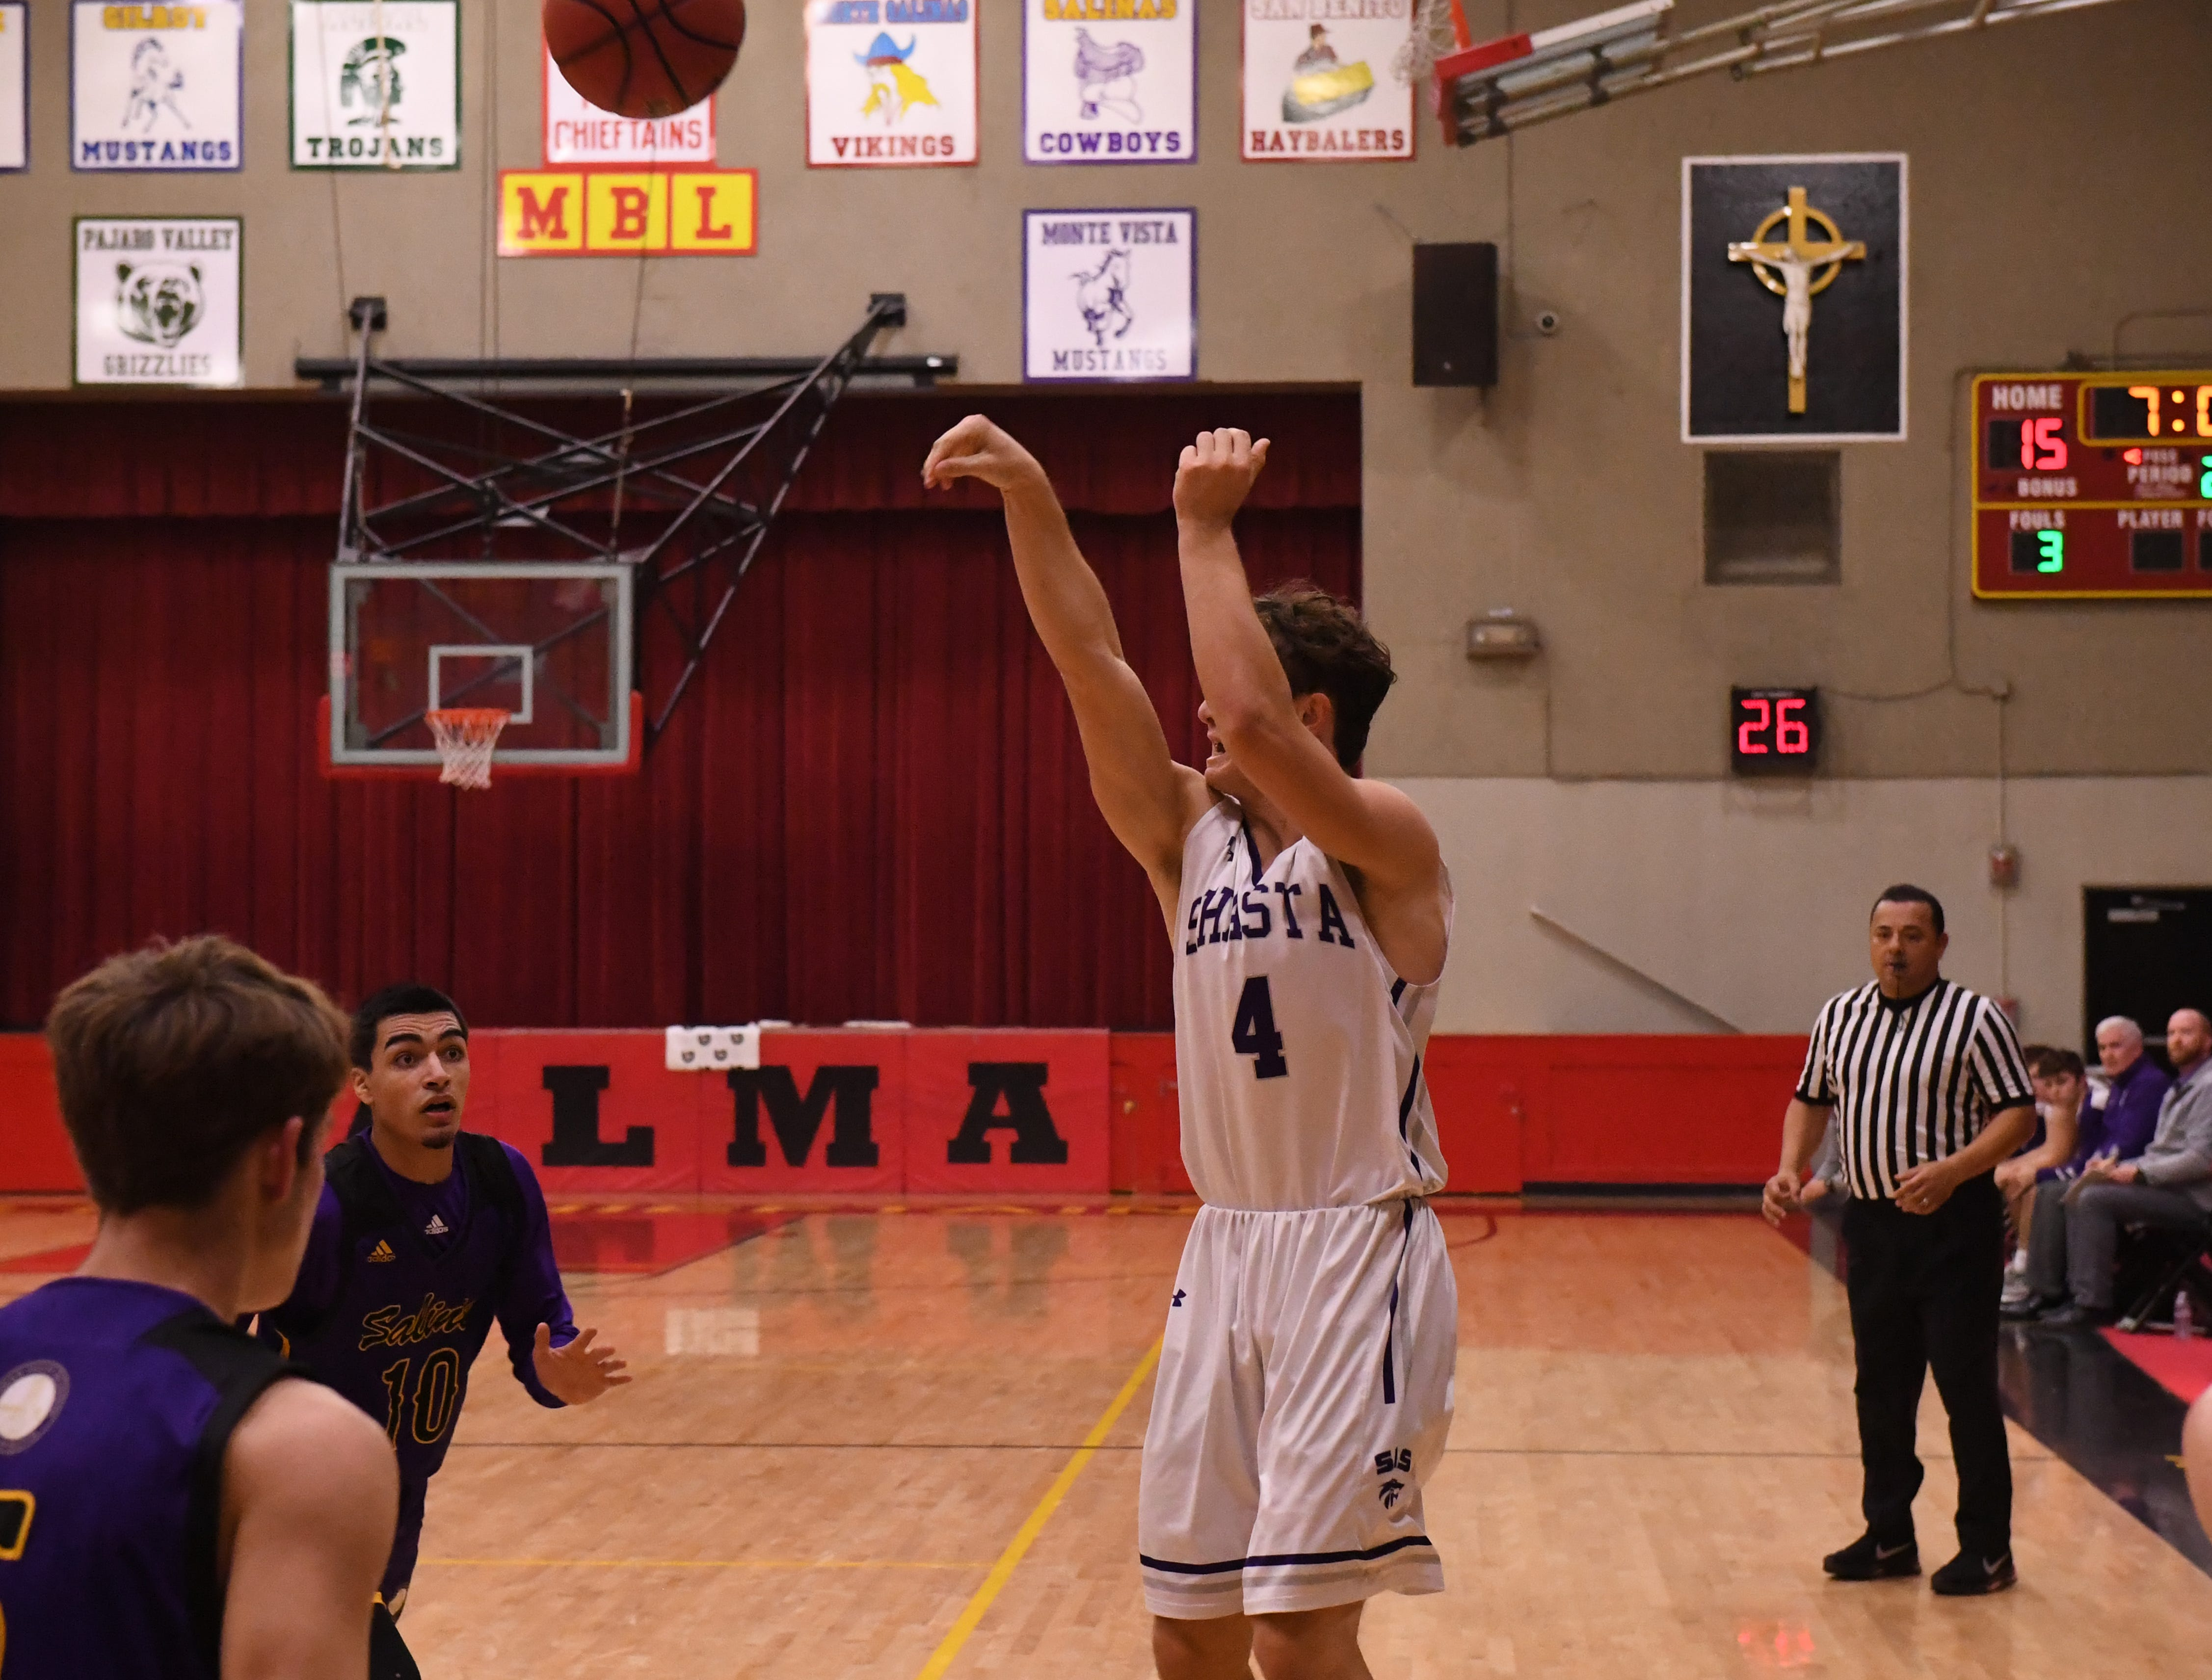 Shasta forward James Weaver (4) shoot a 3-pointer in the second quarter.